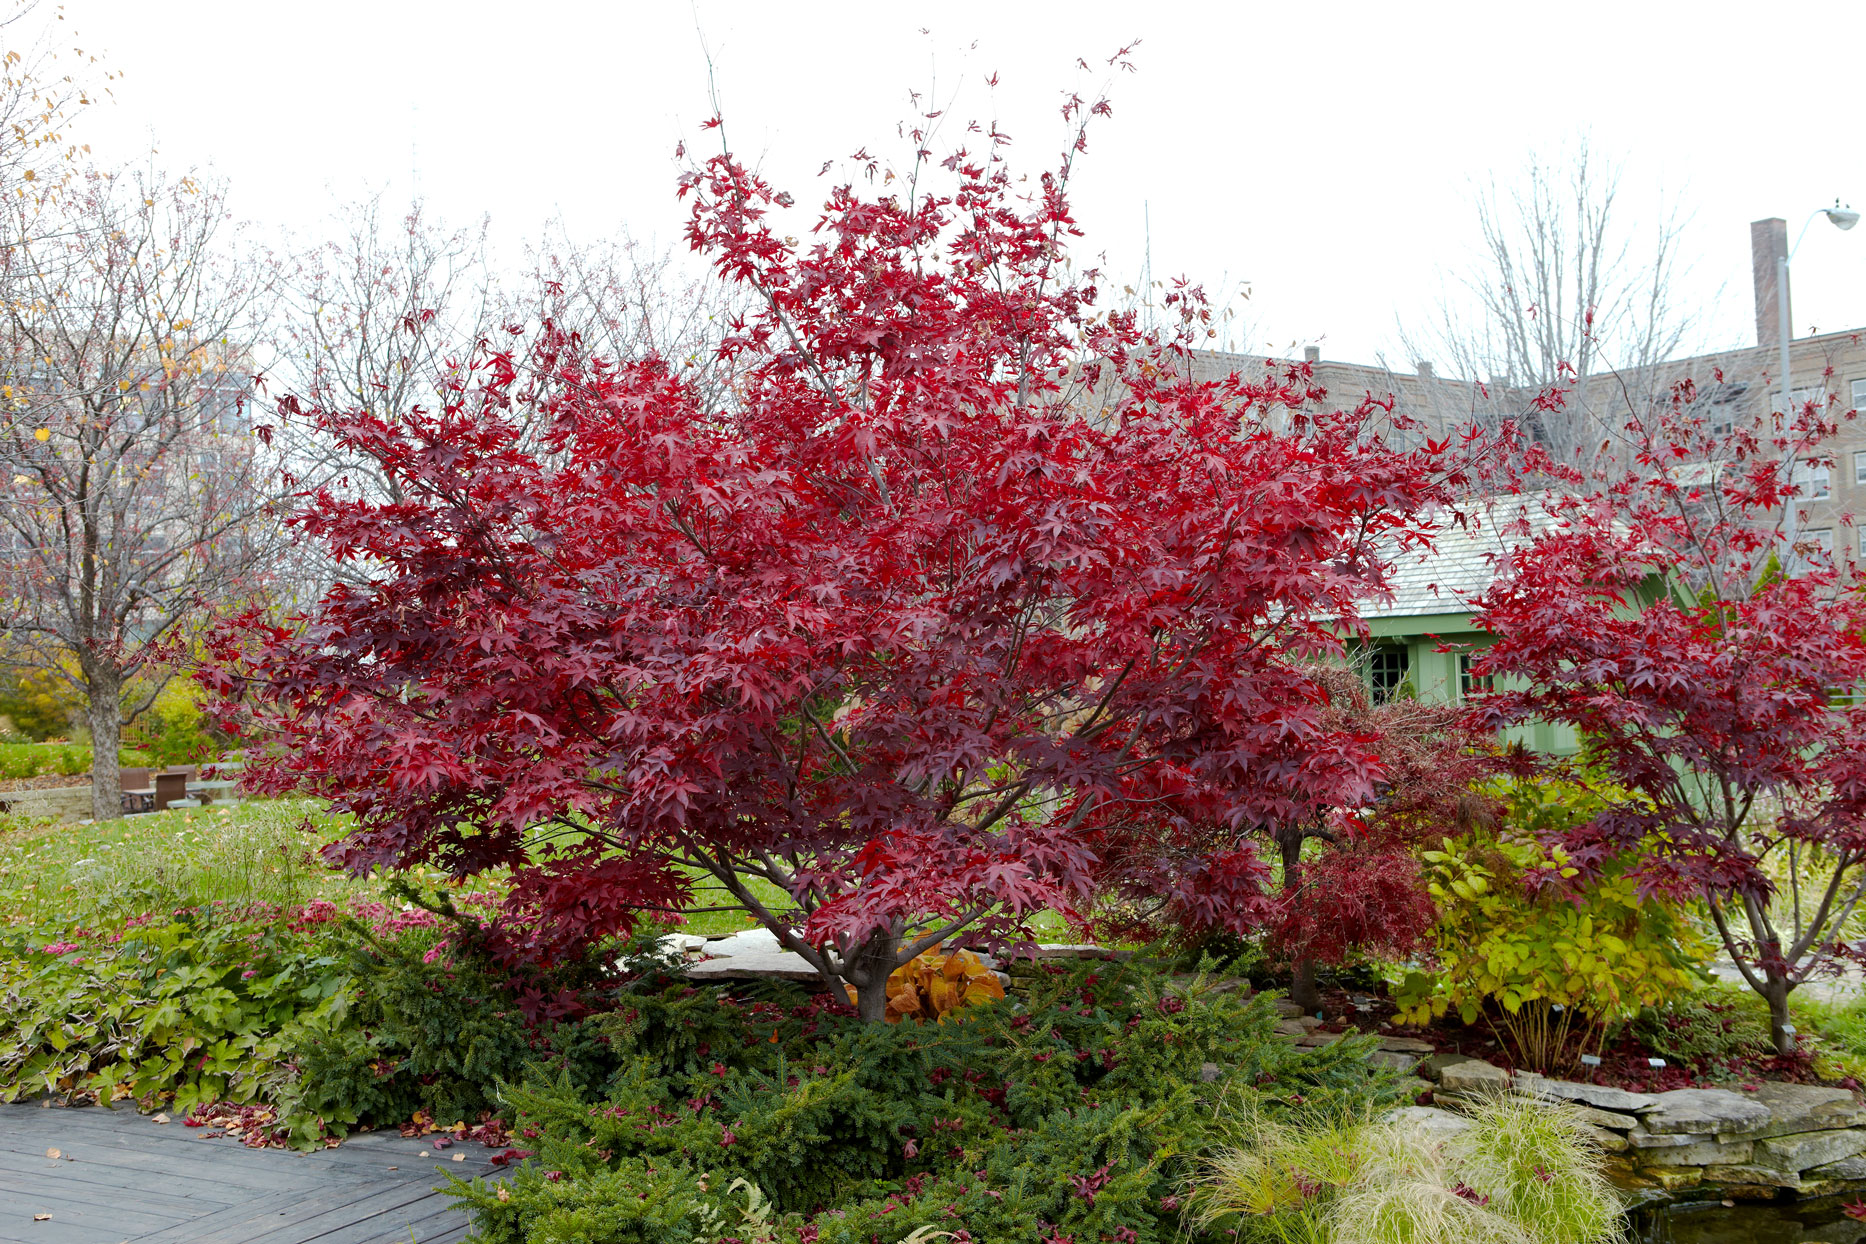 'Bloodgood' Japanese maple Acer palmatum